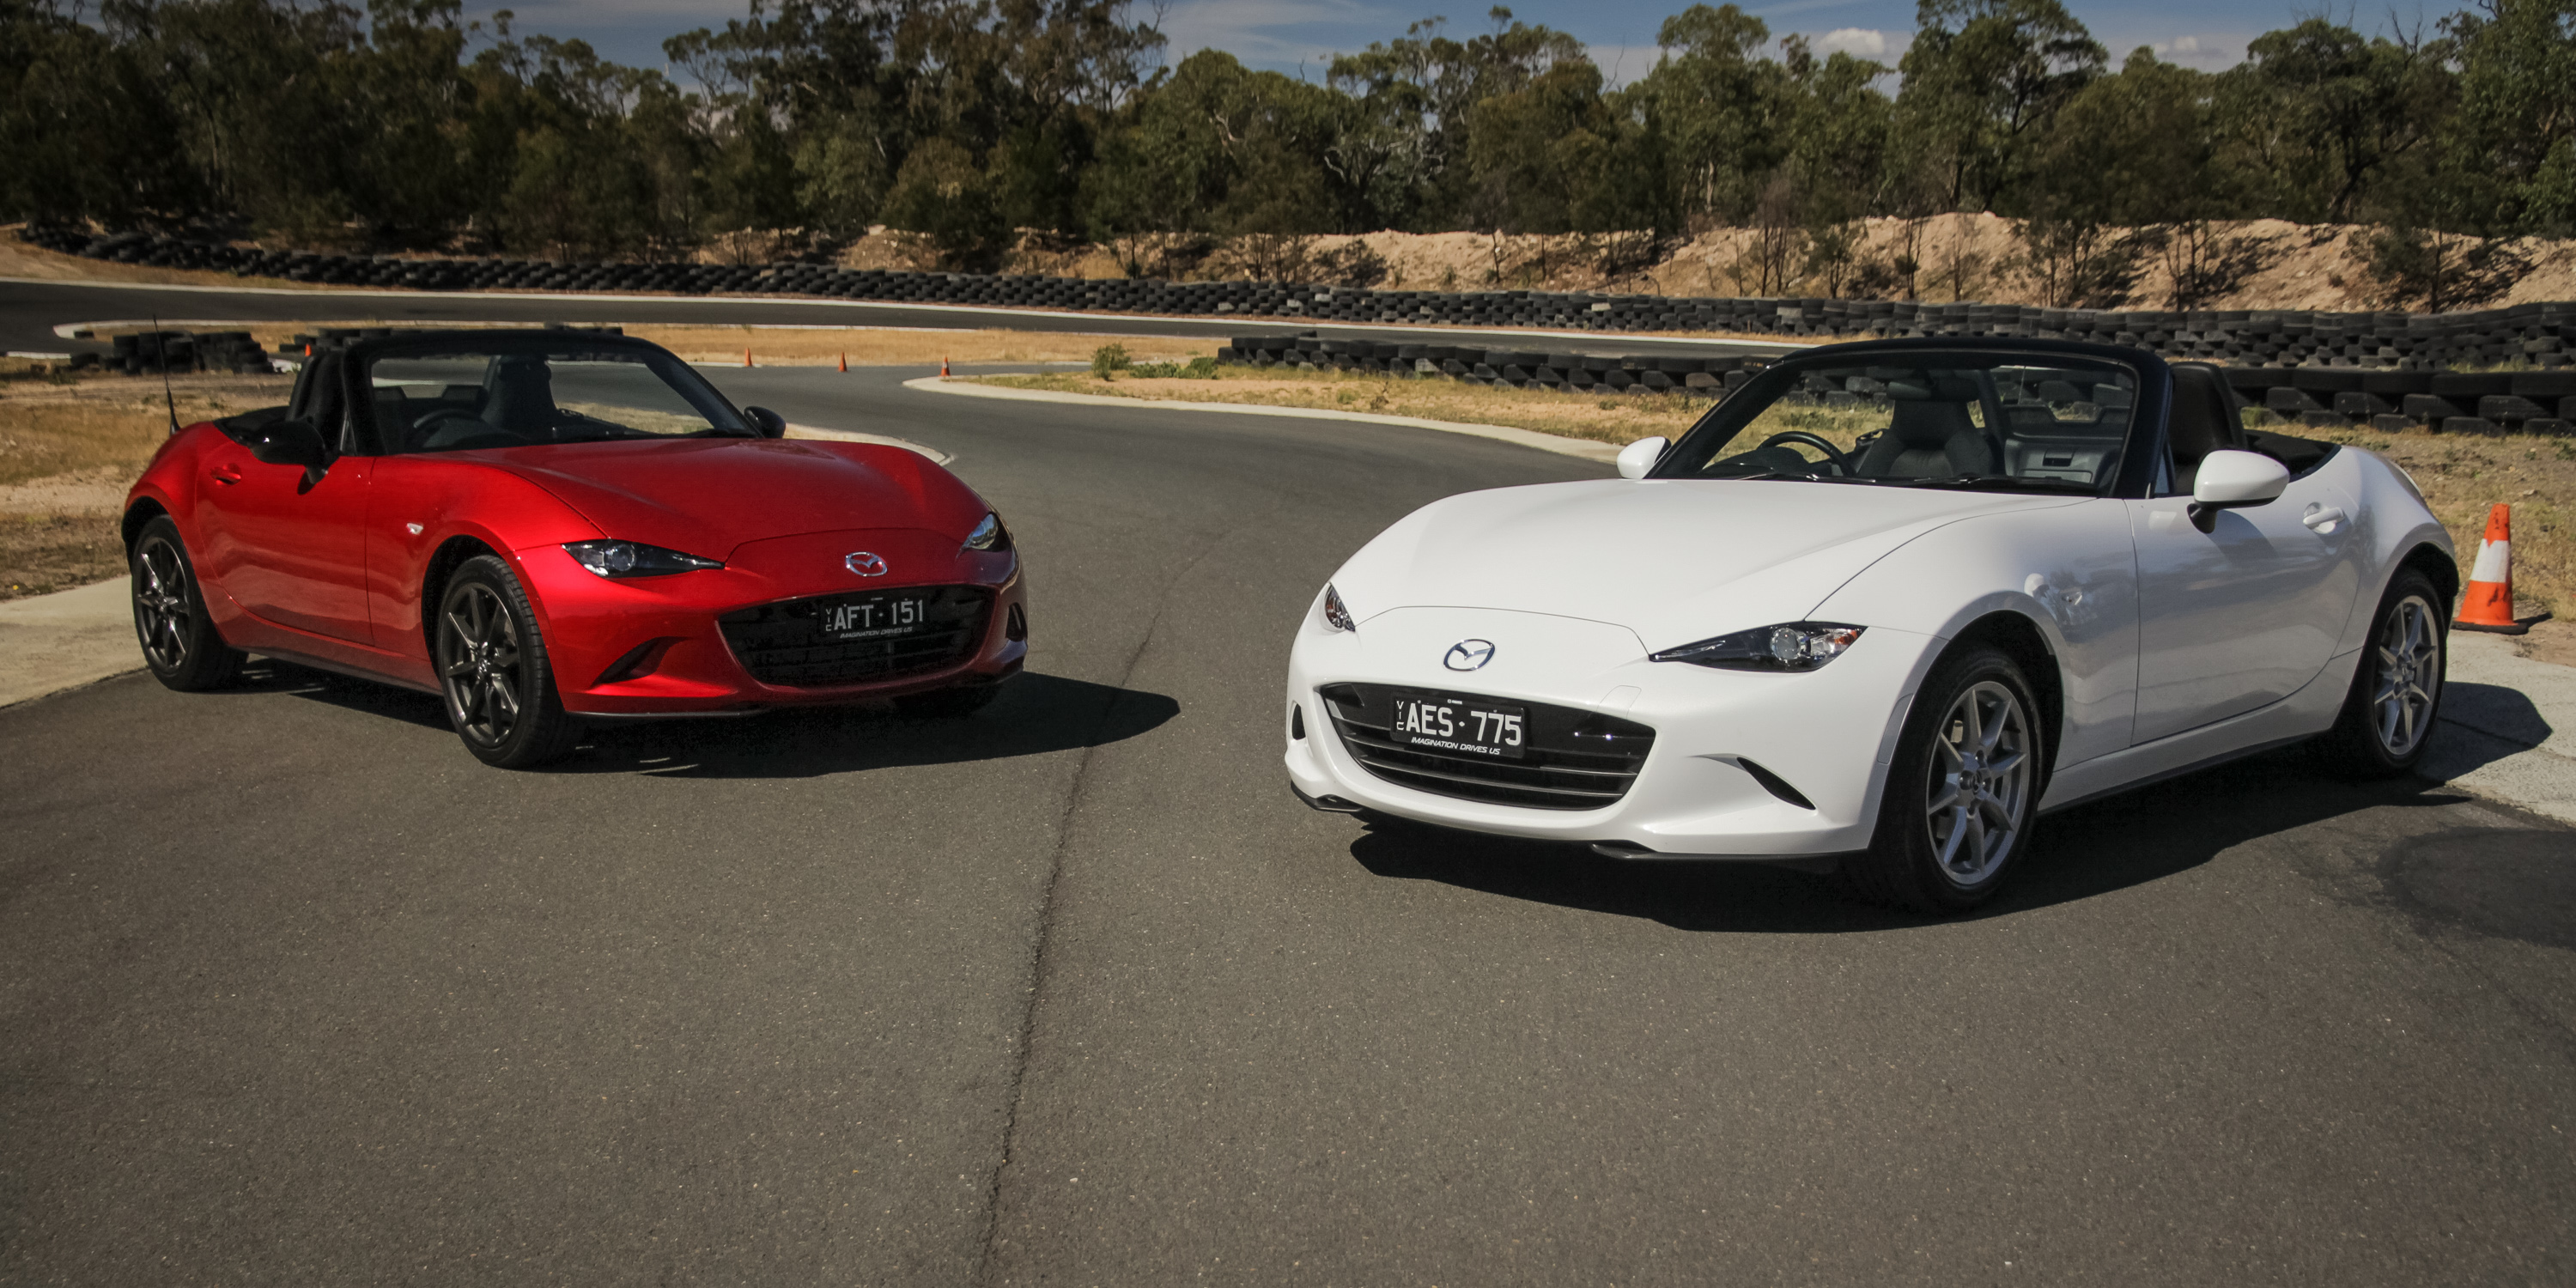 Mazda MX-5 1 5L v Mazda MX-5 2 0L: Track Comparison Review